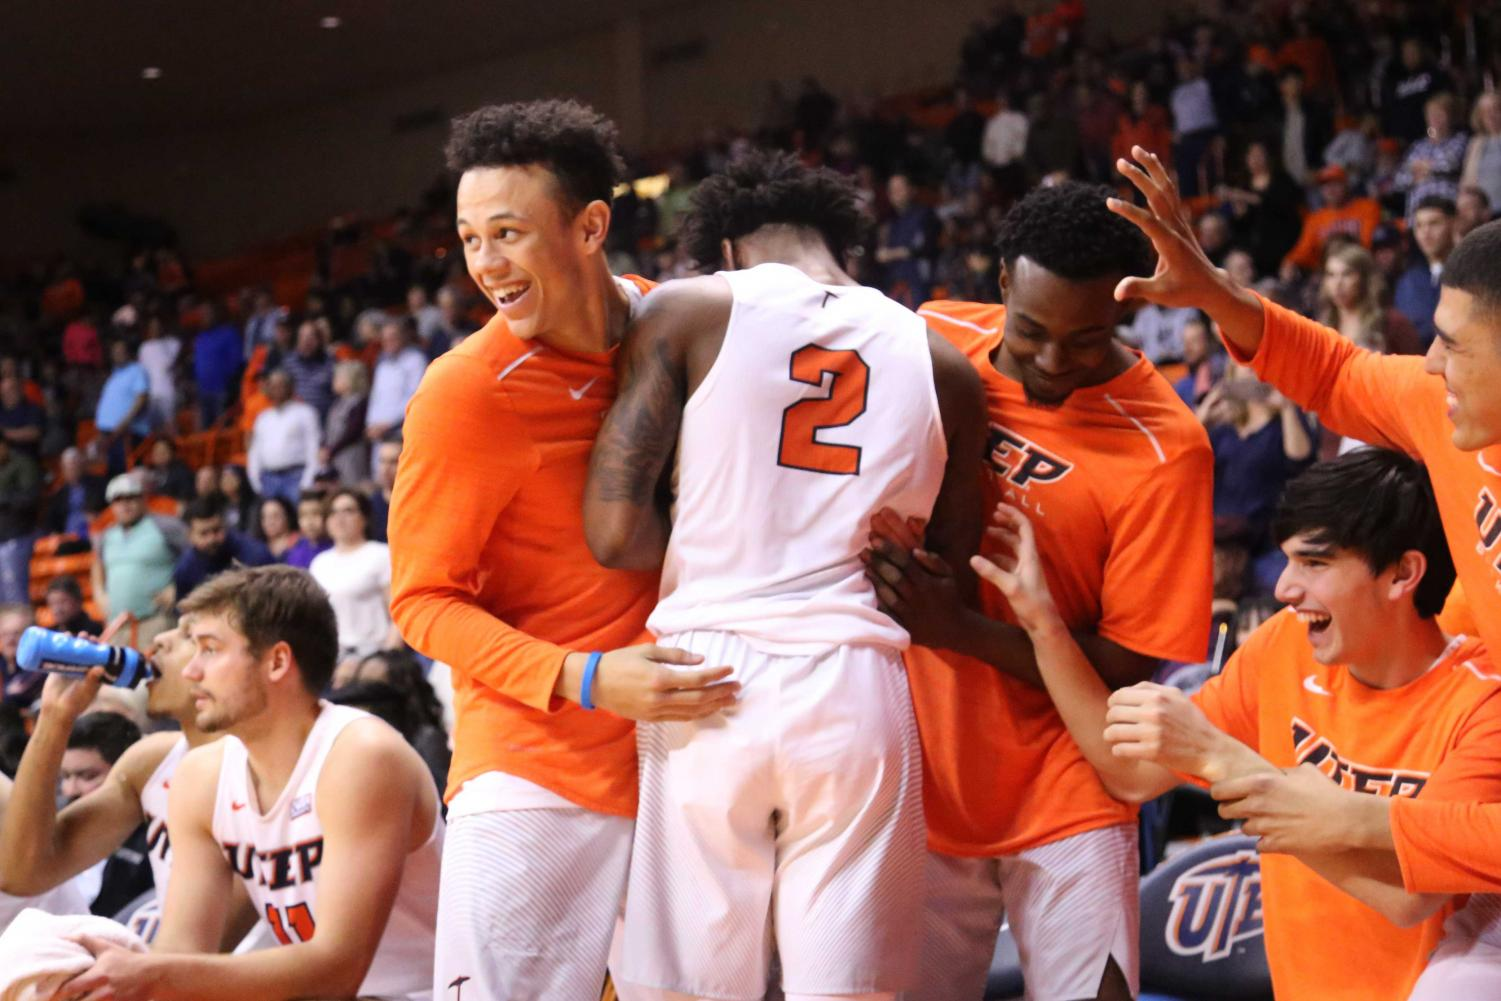 Senior guard Omega Harris hugs his teammates, after receiving a standing ovation from the home crowd.